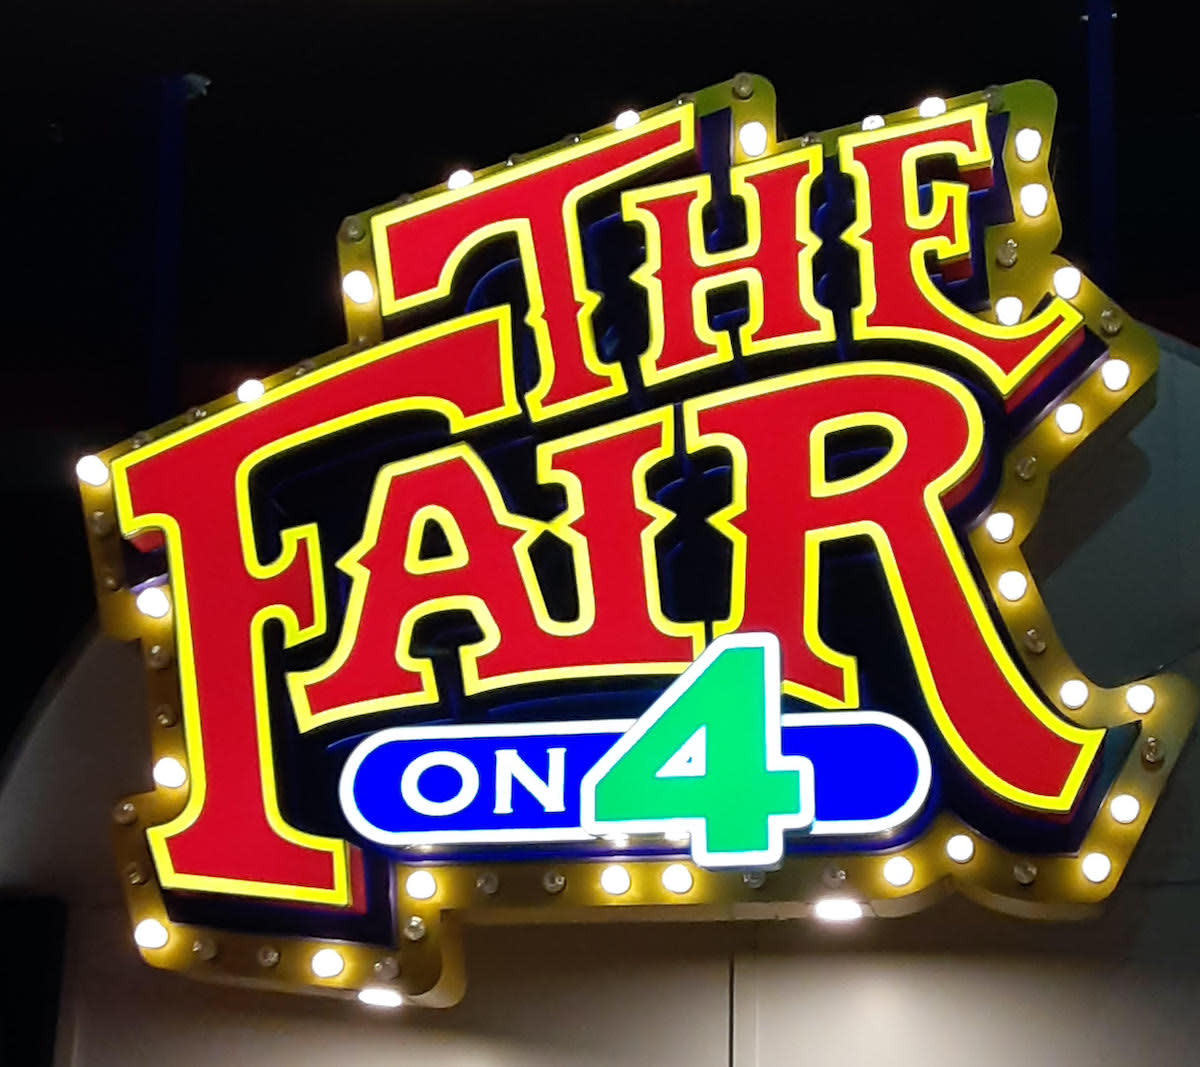 A sign for The Fair on 4.